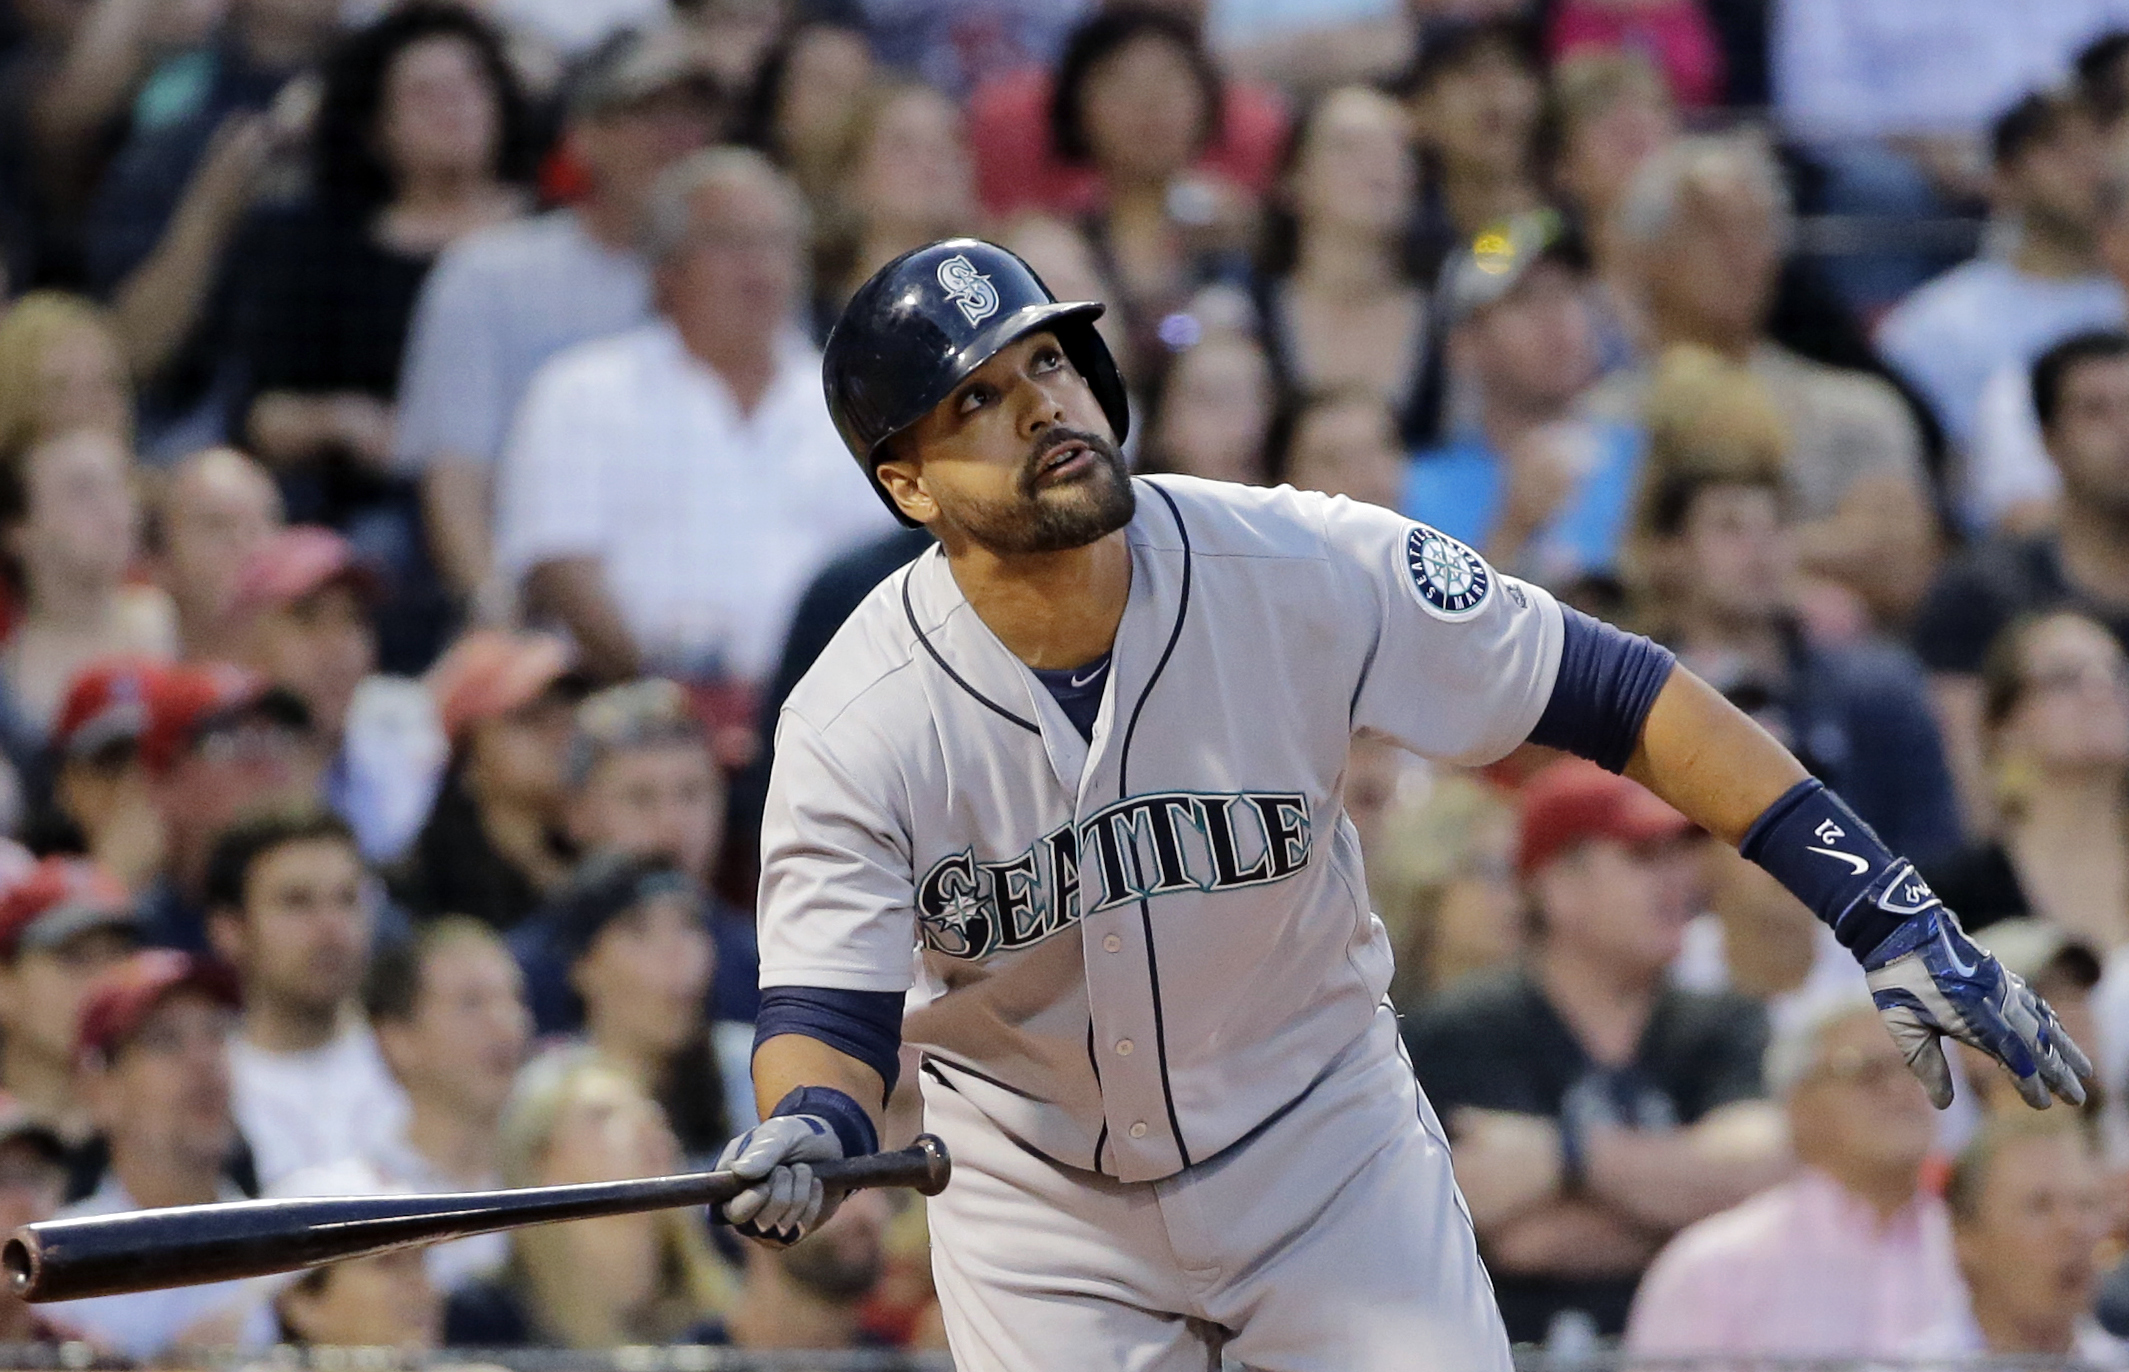 Seattle Mariners' Franklin Gutierrez watches his three-run double during the fourth inning of a baseball game against the Boston Red Sox at Fenway Park on Friday, June 17, 2016, in Boston. (AP Photo/Elise Amendola)